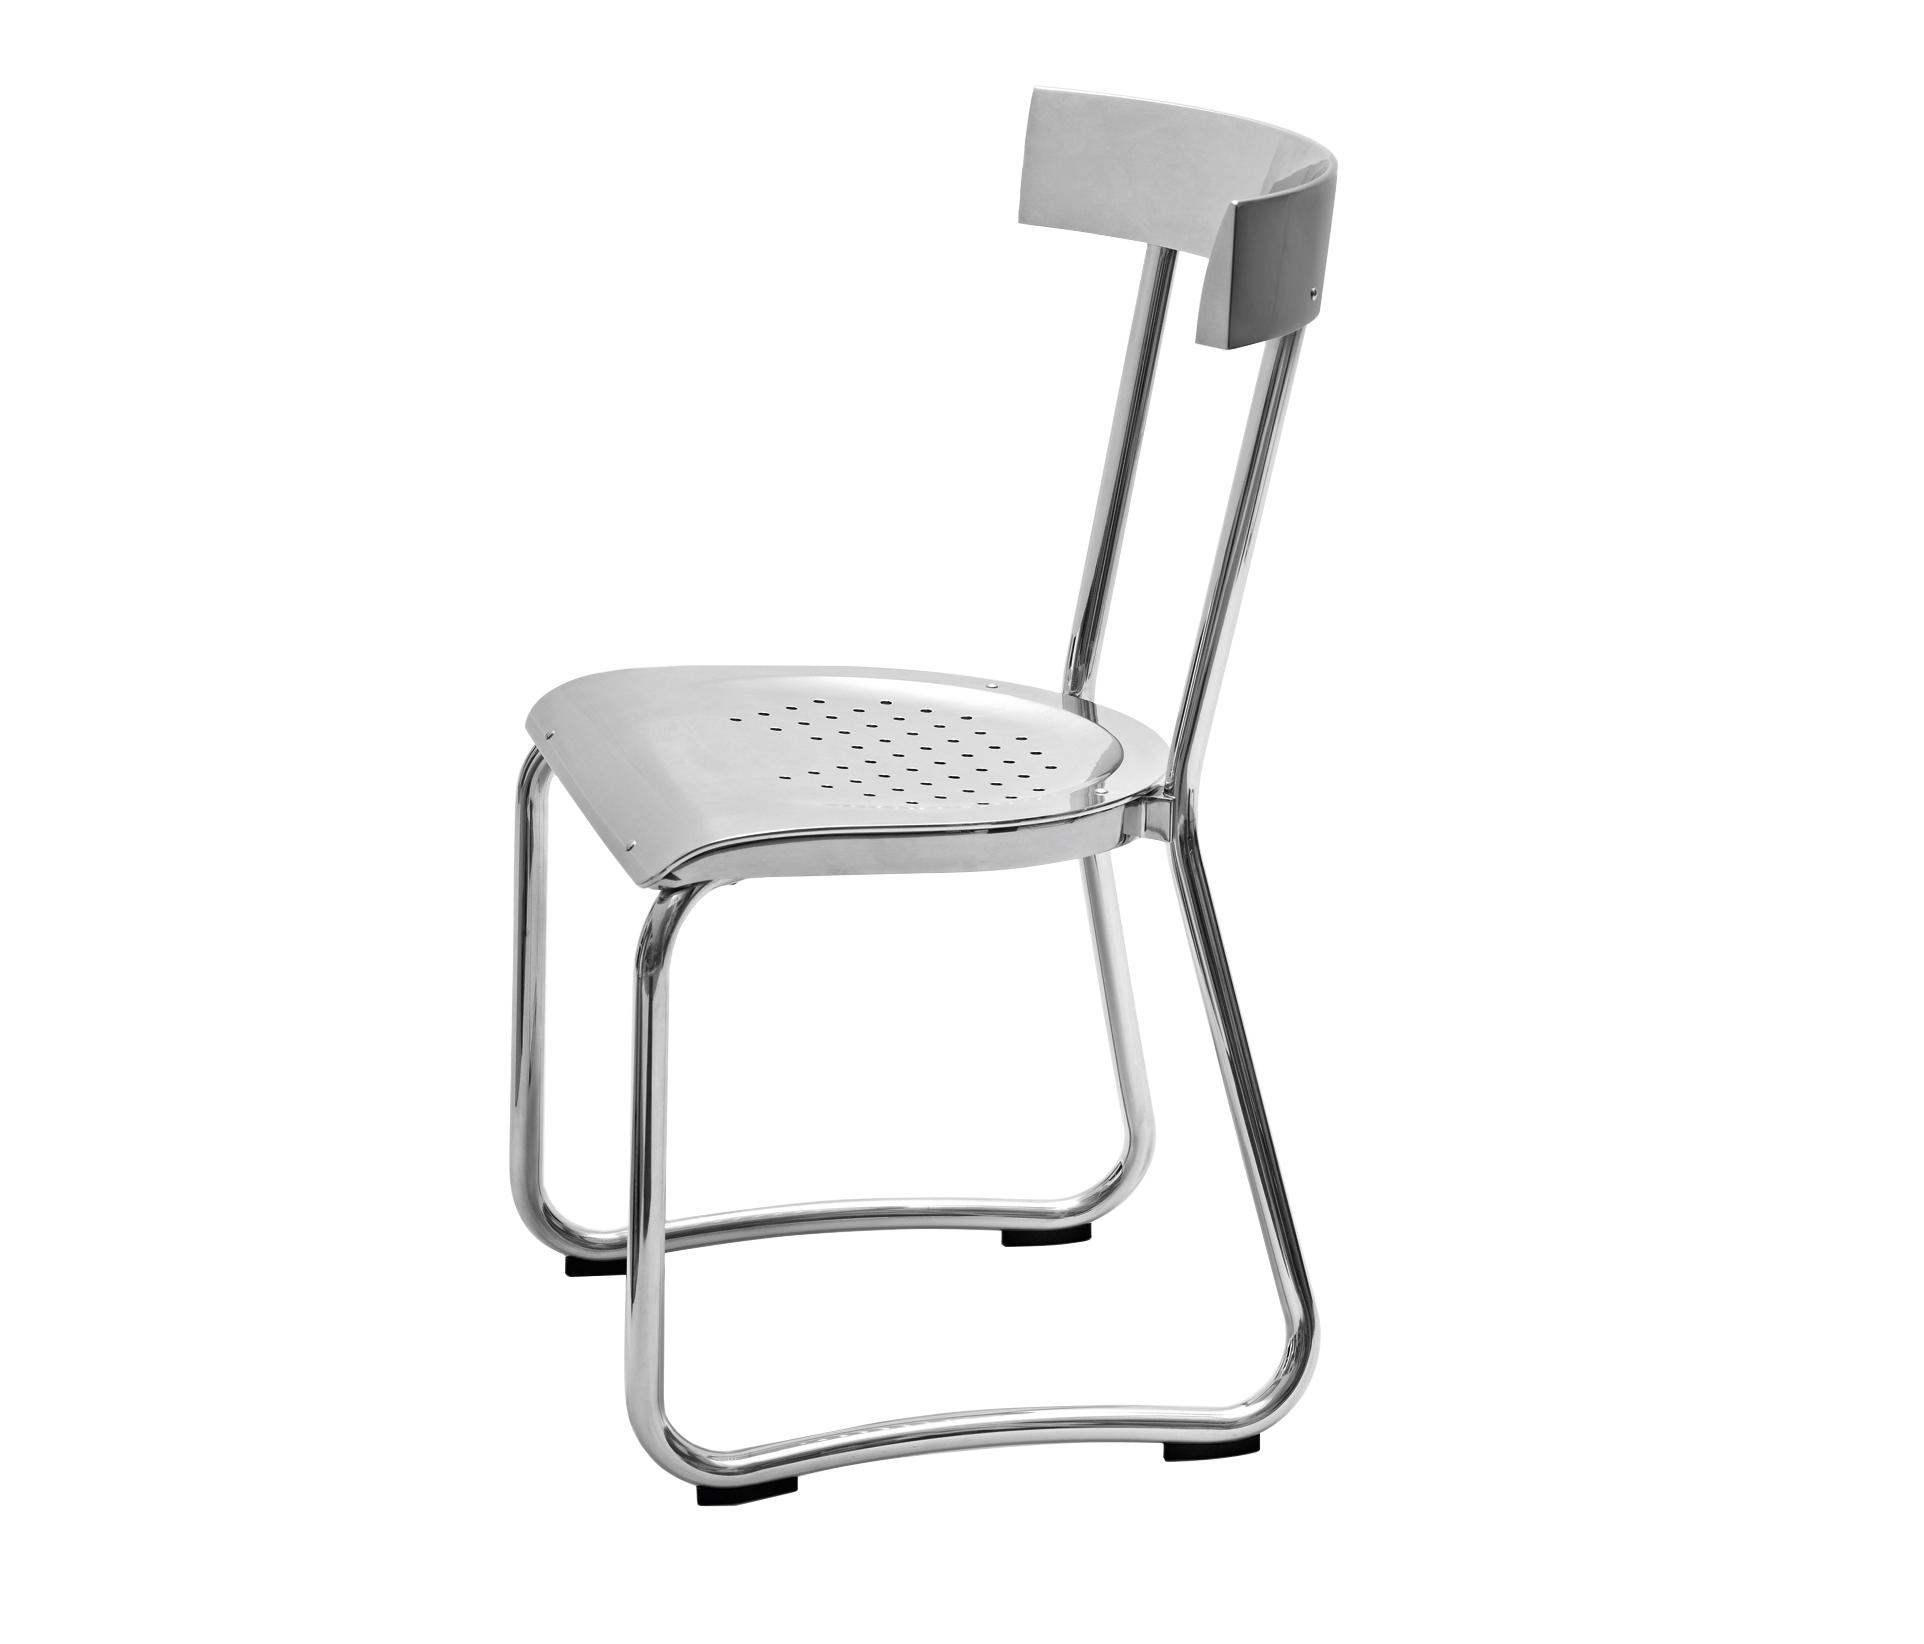 D 235 1 MONTECATINI CHAIR Restaurant chairs from Molteni & C